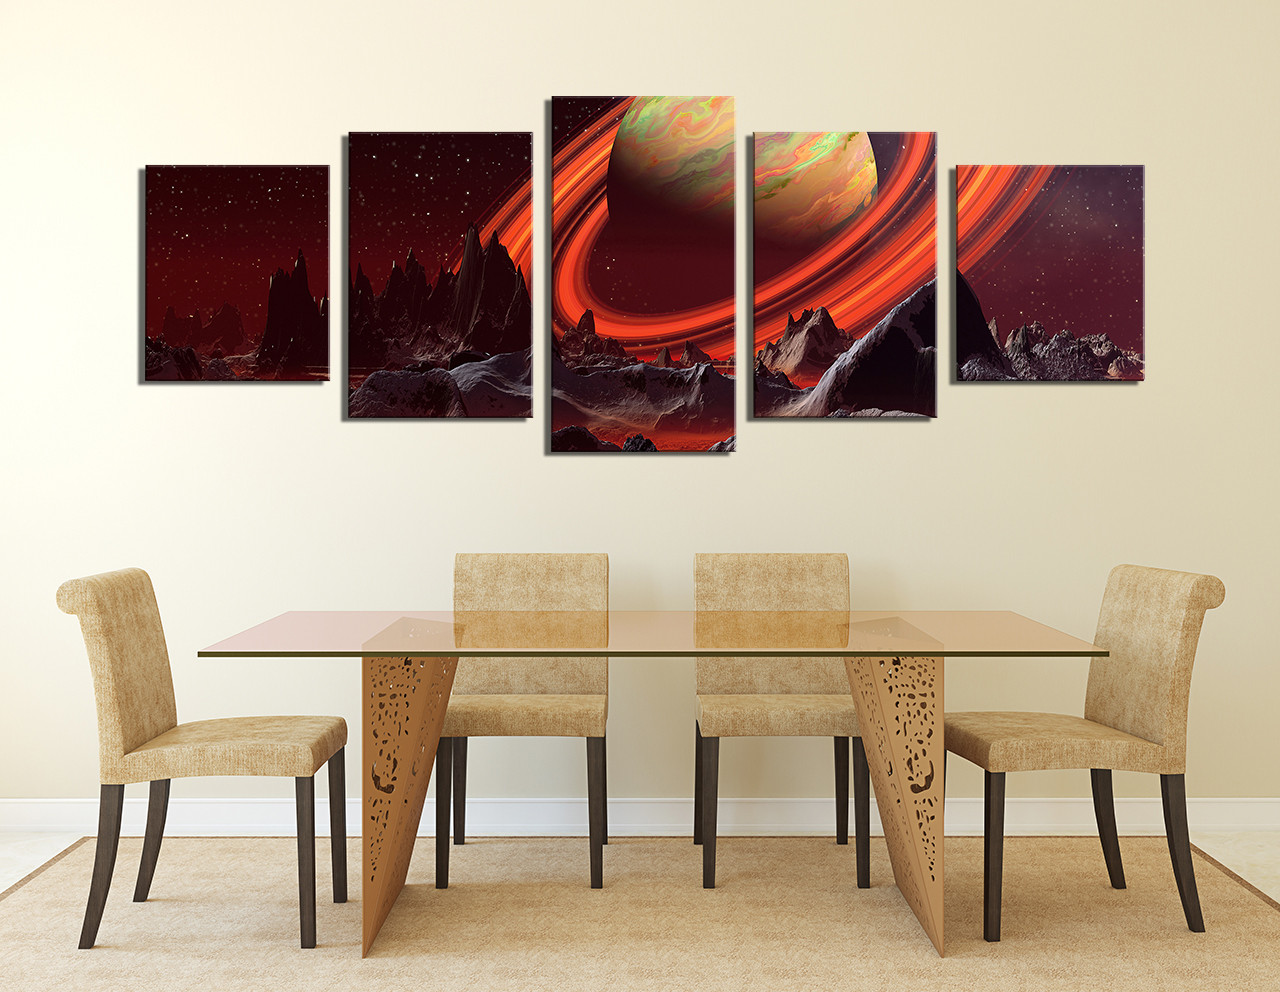 High Quality 5 Piece Artwork, Dining Room Canvas Wall Art, Landscape Large Canvas,  Orange Huge